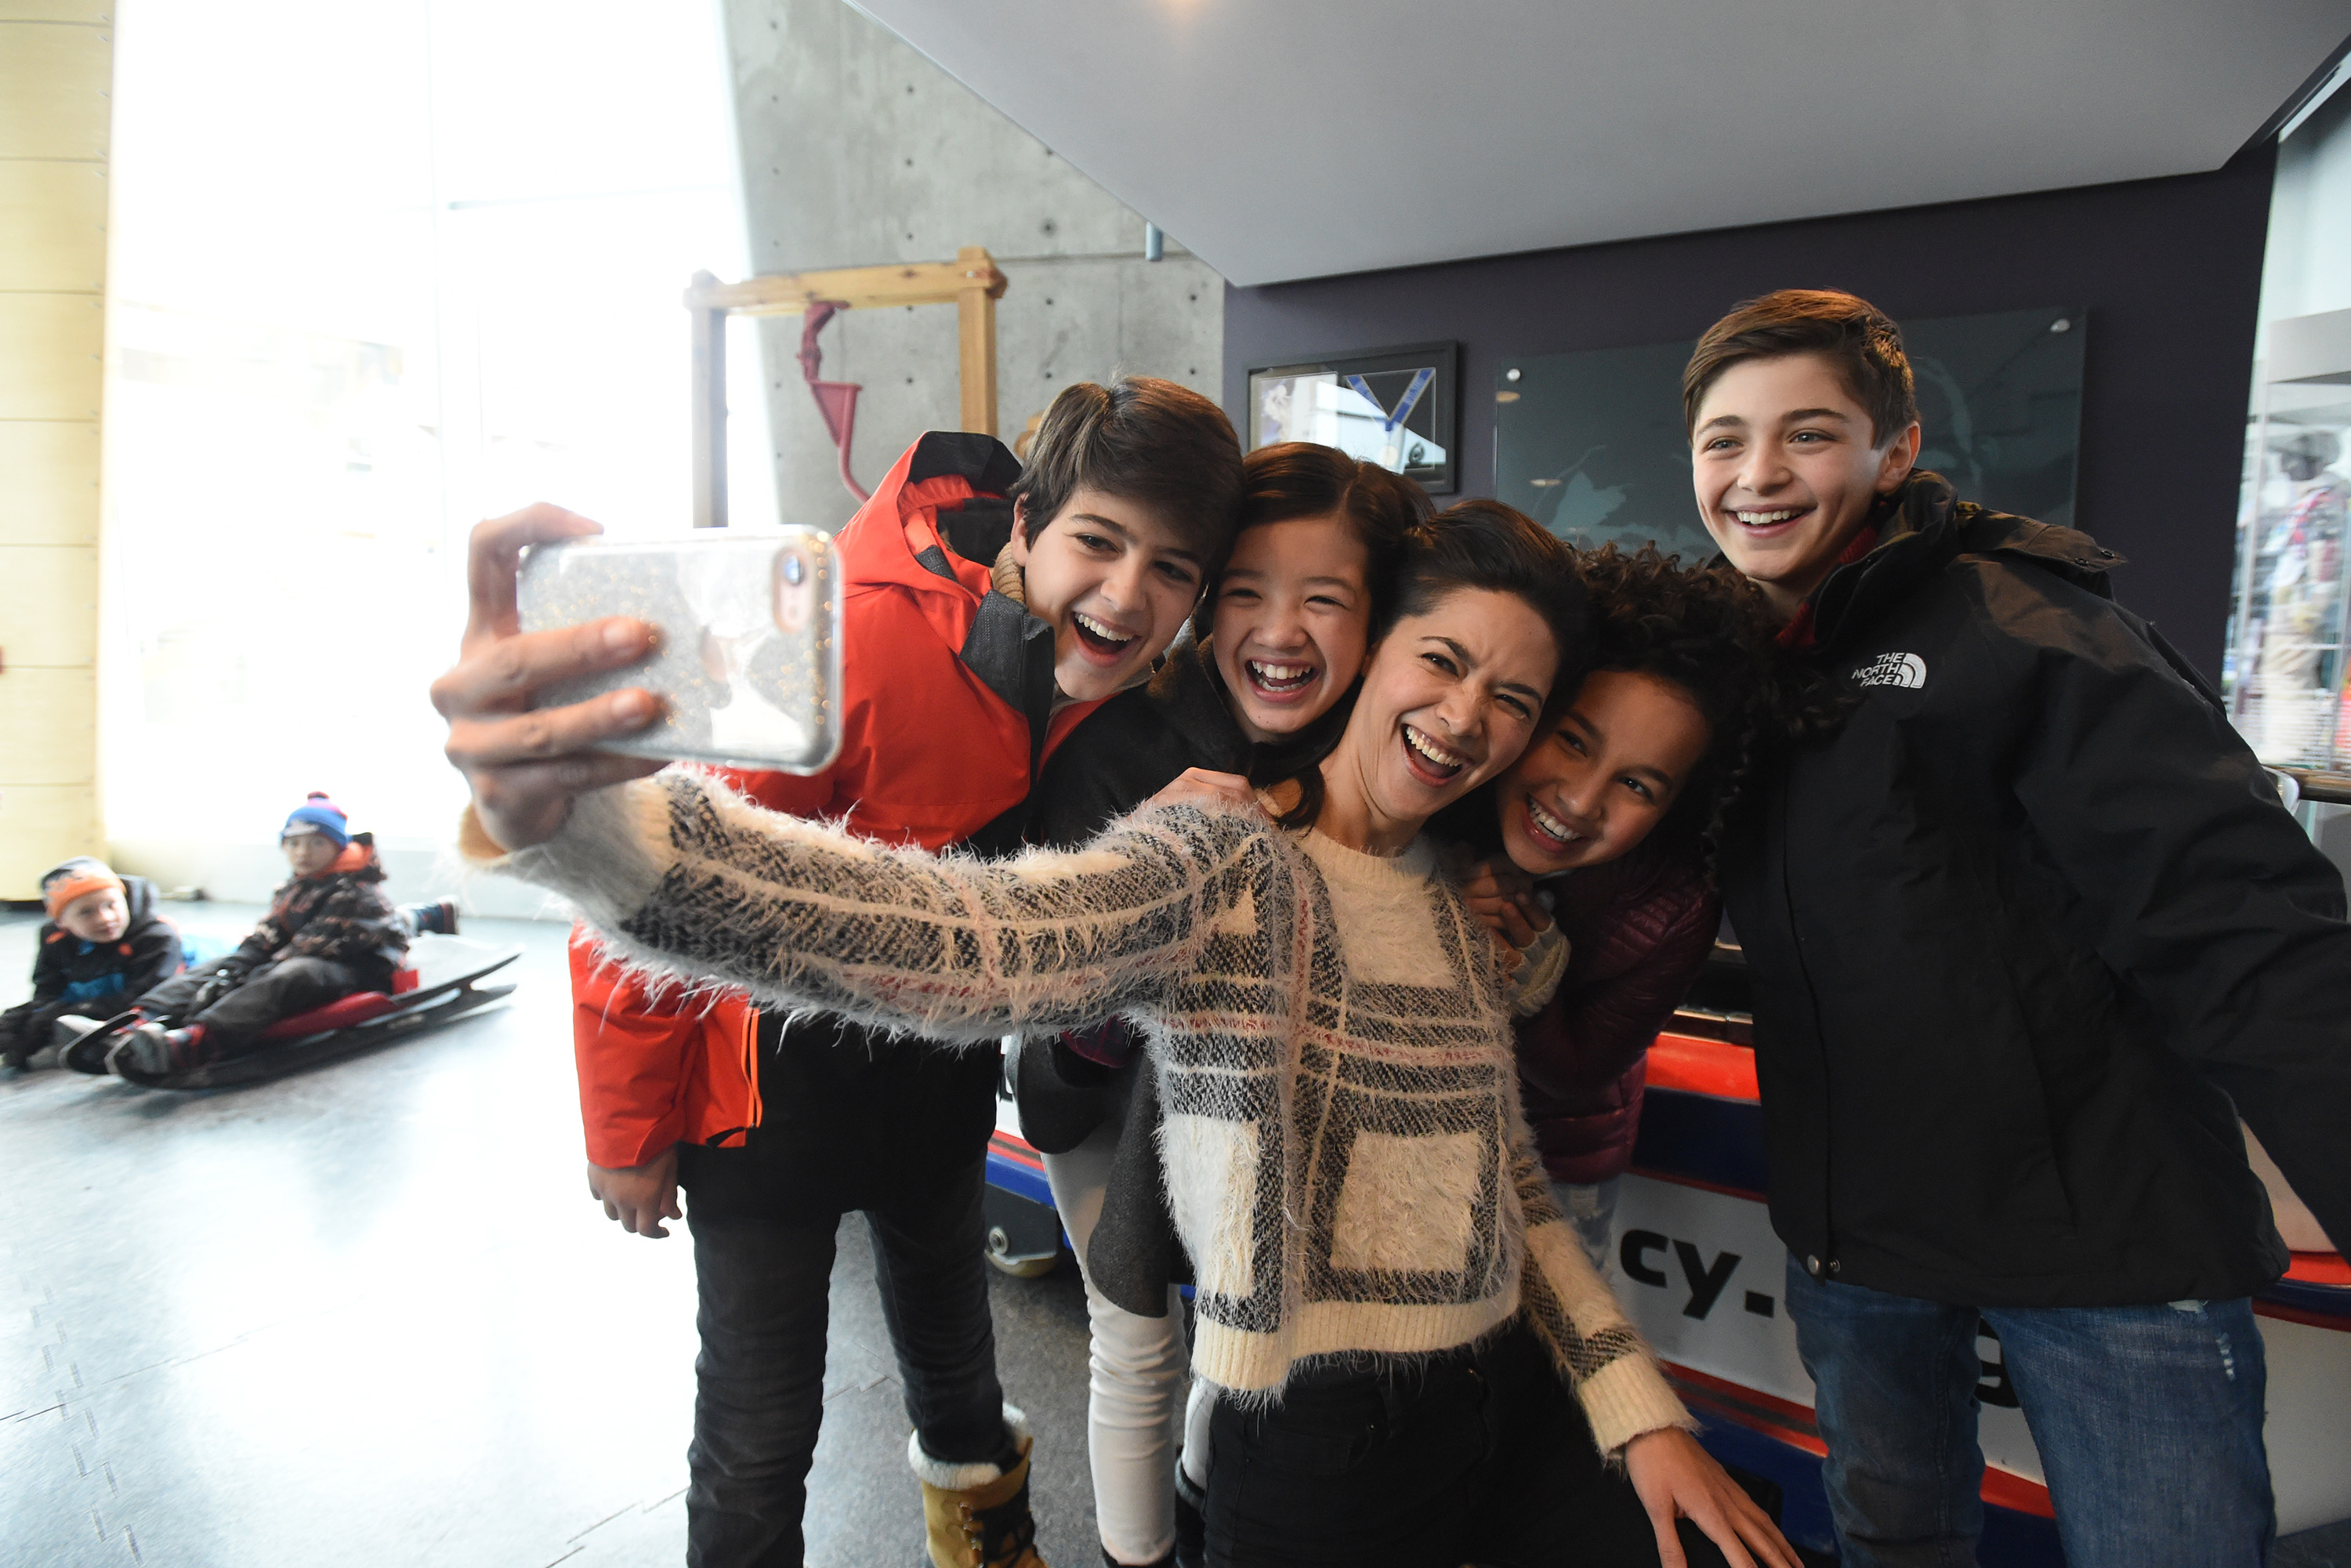 Joshua Rush, Lilan Bowden, Asher Angel, Peyton Elizabeth Lee, and Sofia Wylie at an event for Andi Mack (2017)